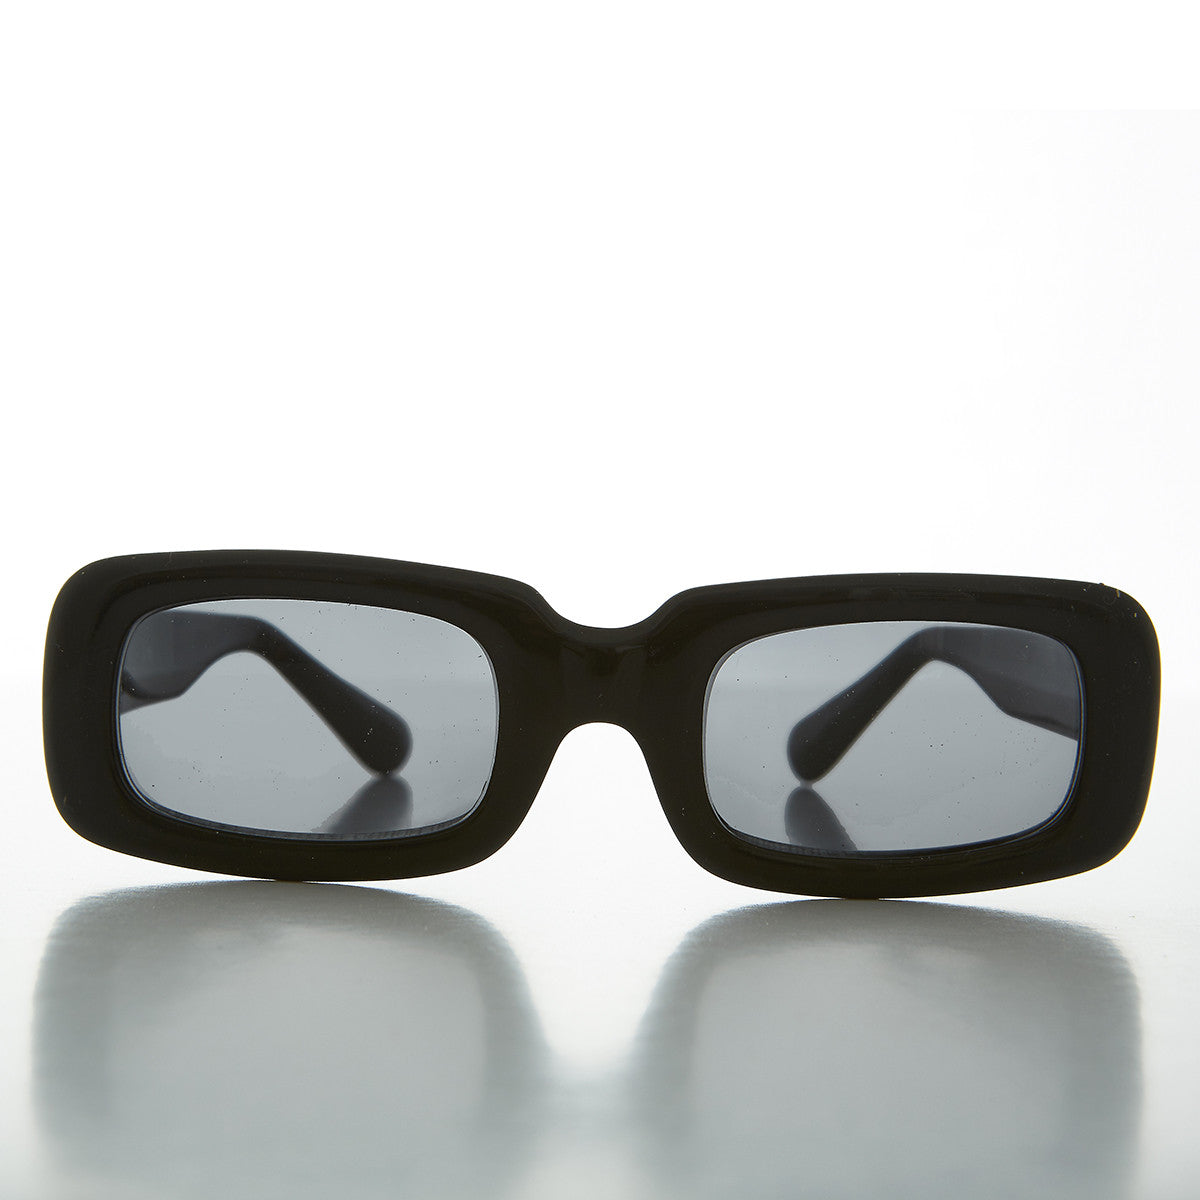 Mod Beatnik Rectangular Rare Punk Vintage Sunglasses - Yoko